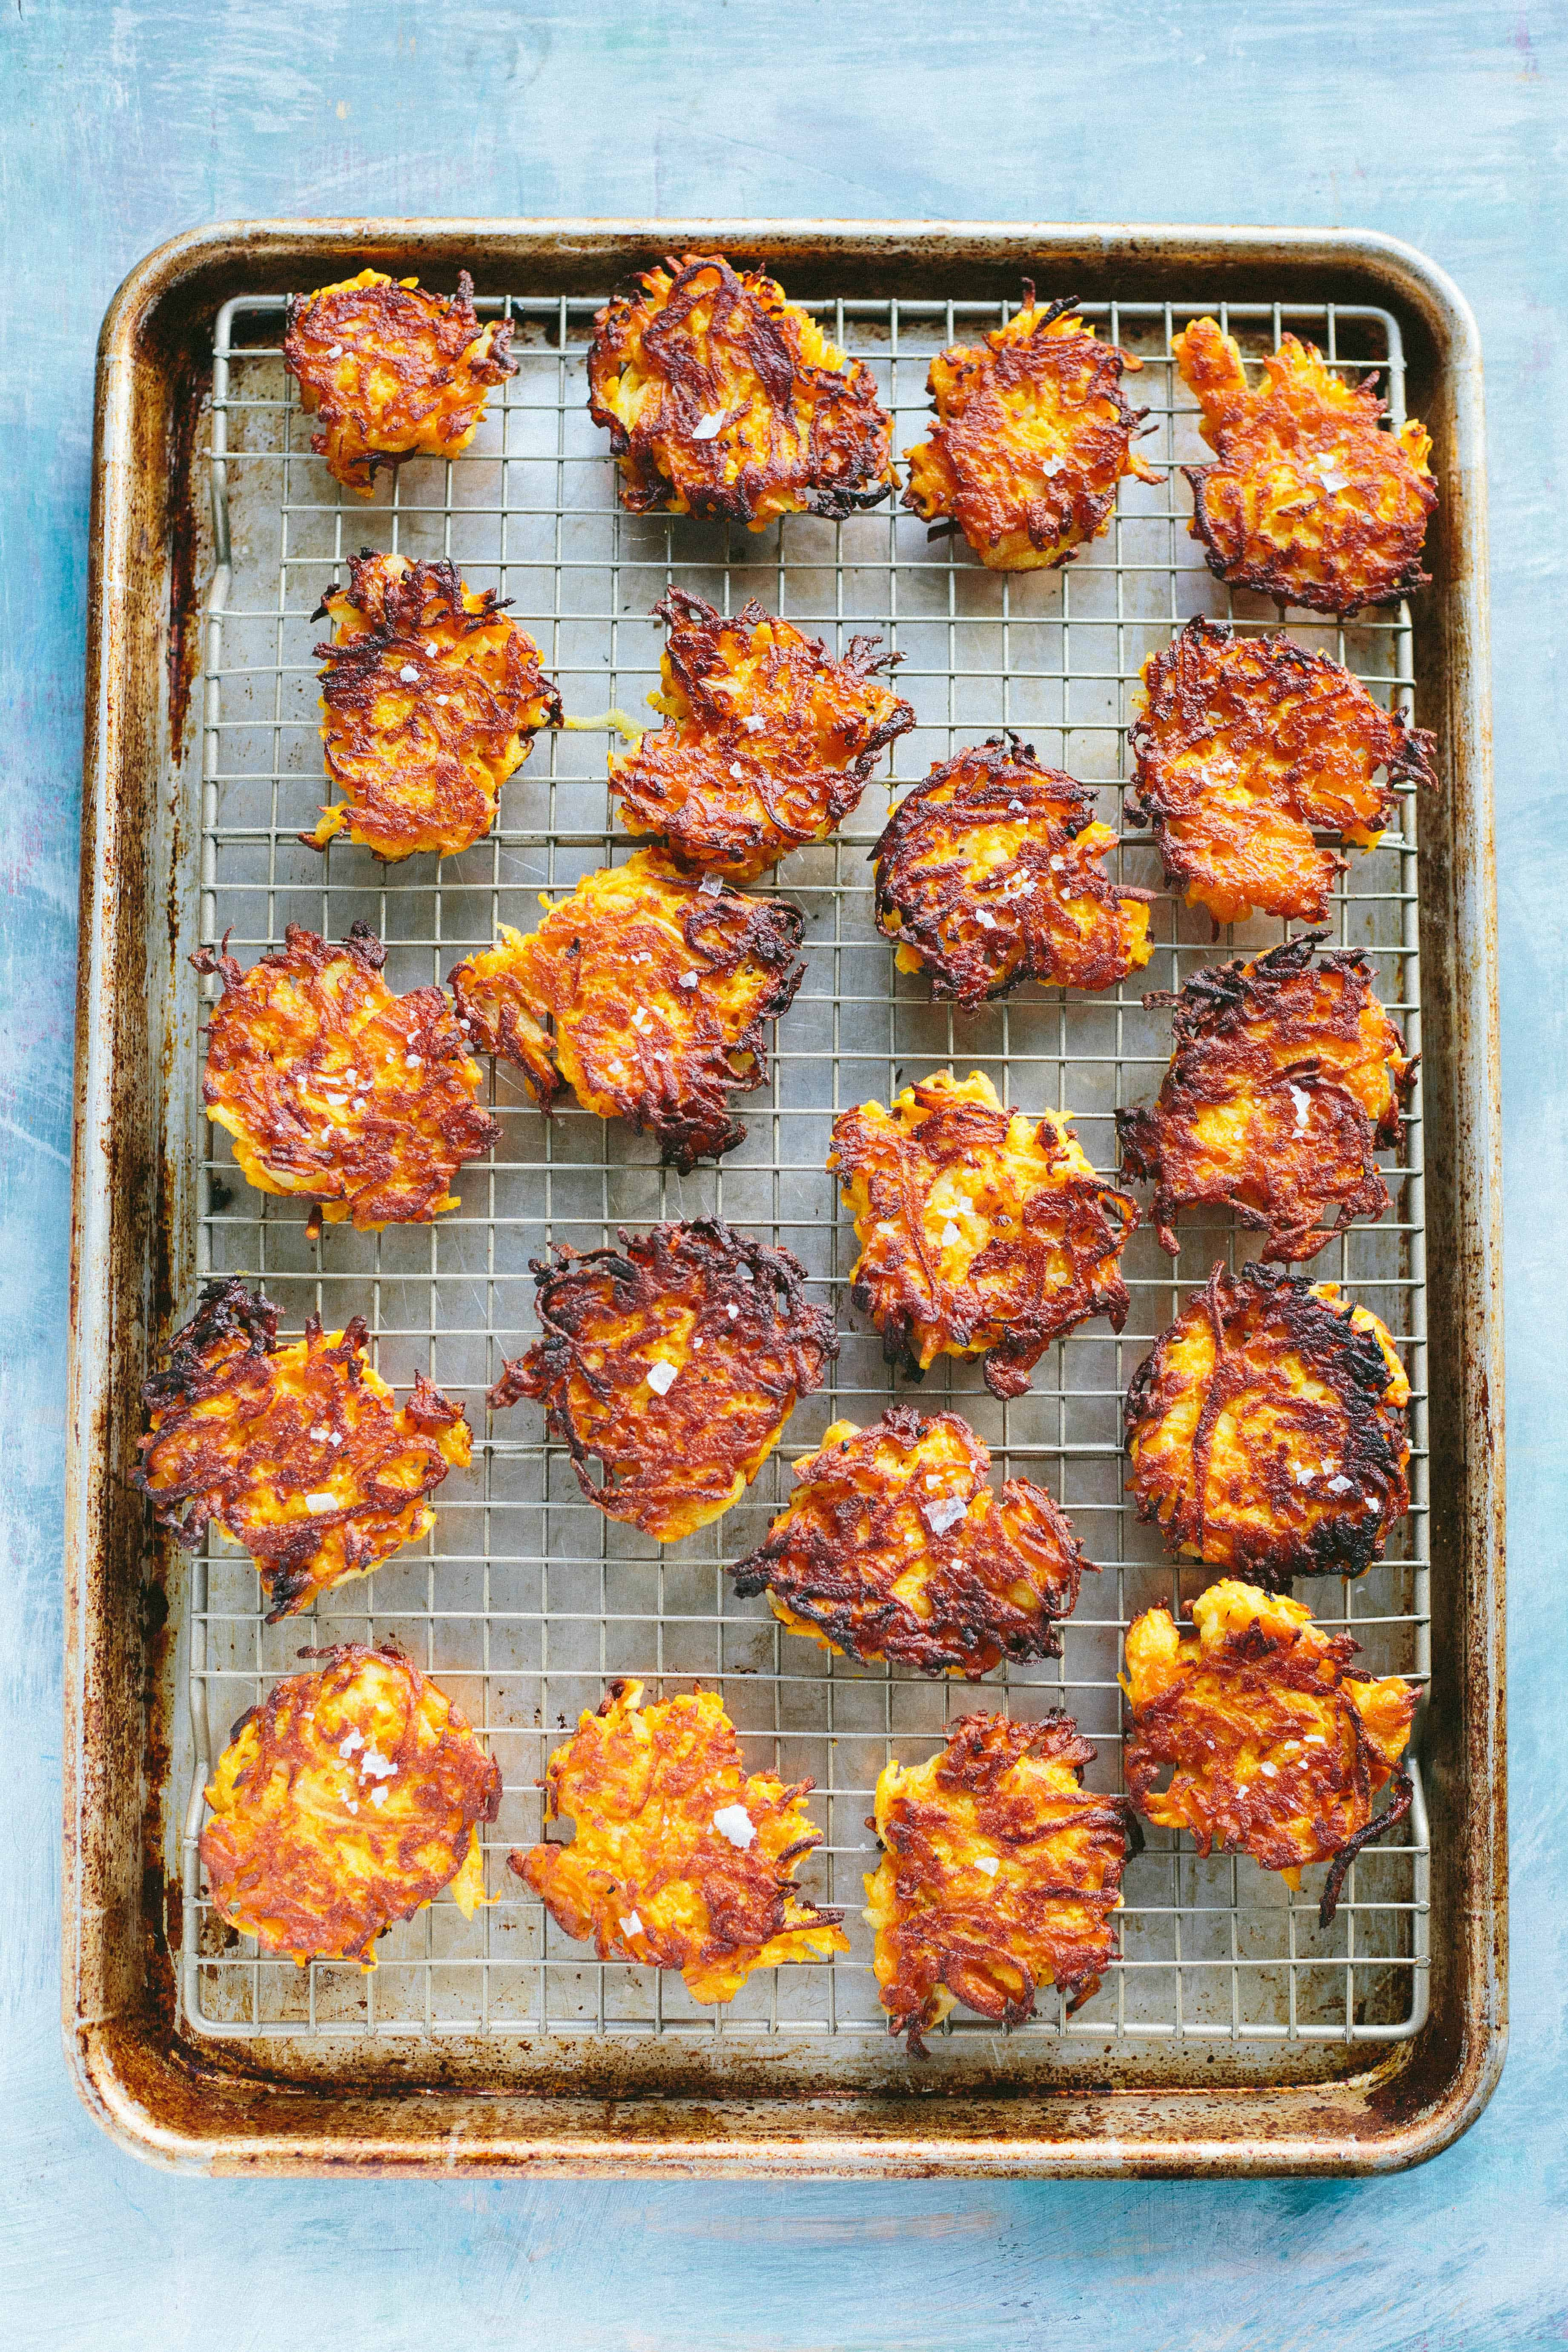 Butternut squash fritters draining on a metal rack over a baking sheet.